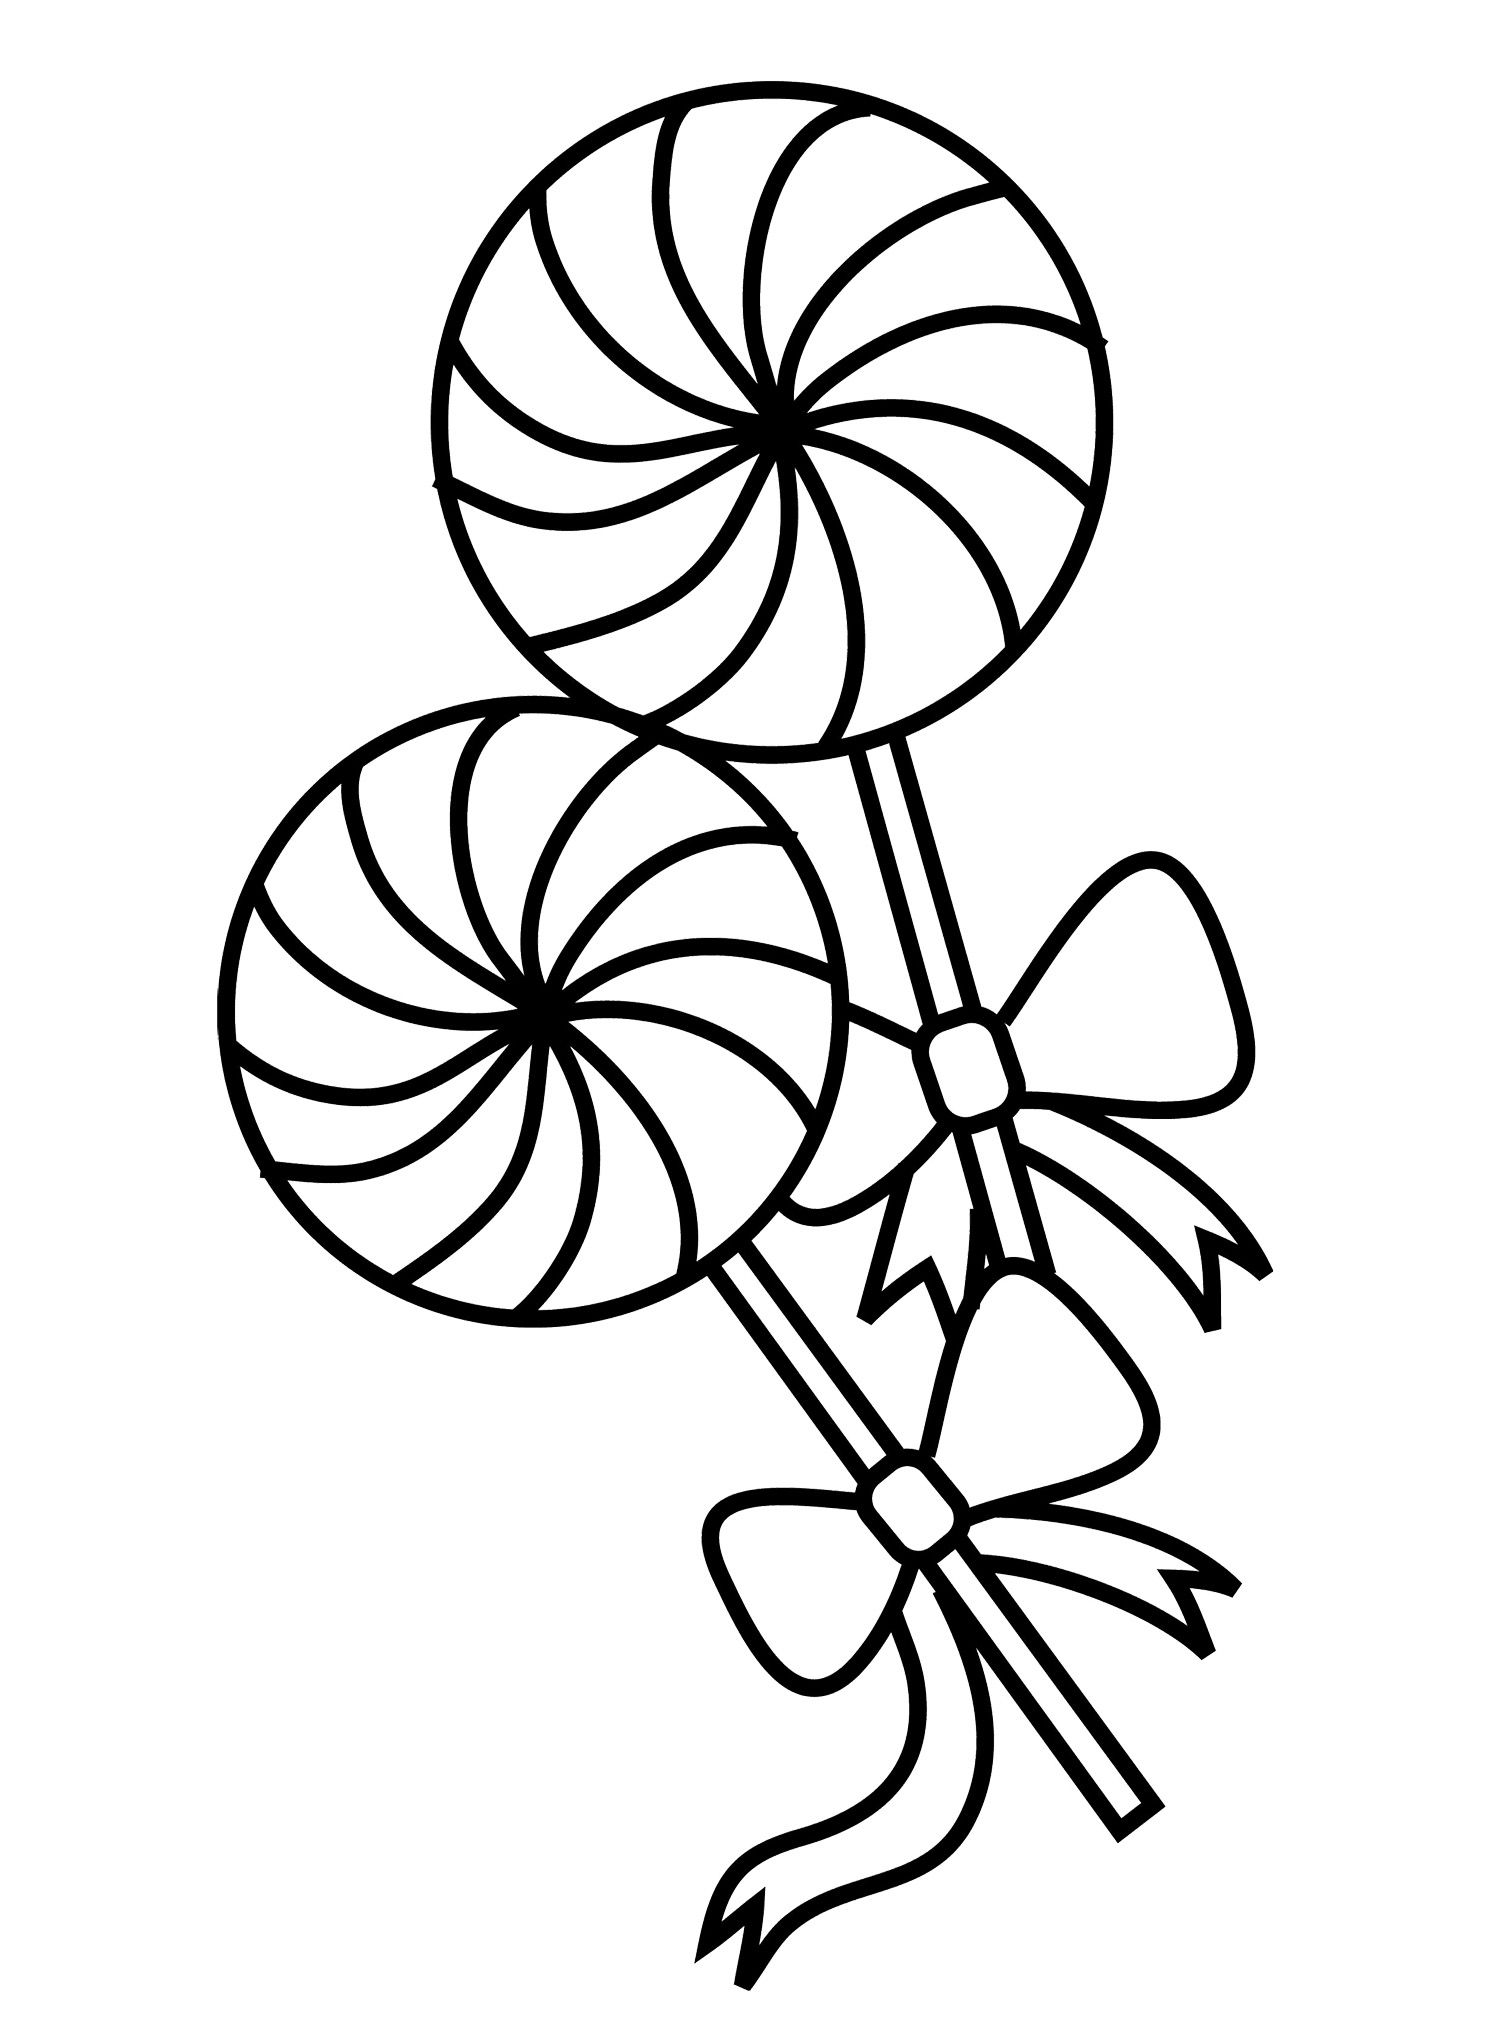 Lollipop coloring page | Coloring pages | 2021x1500